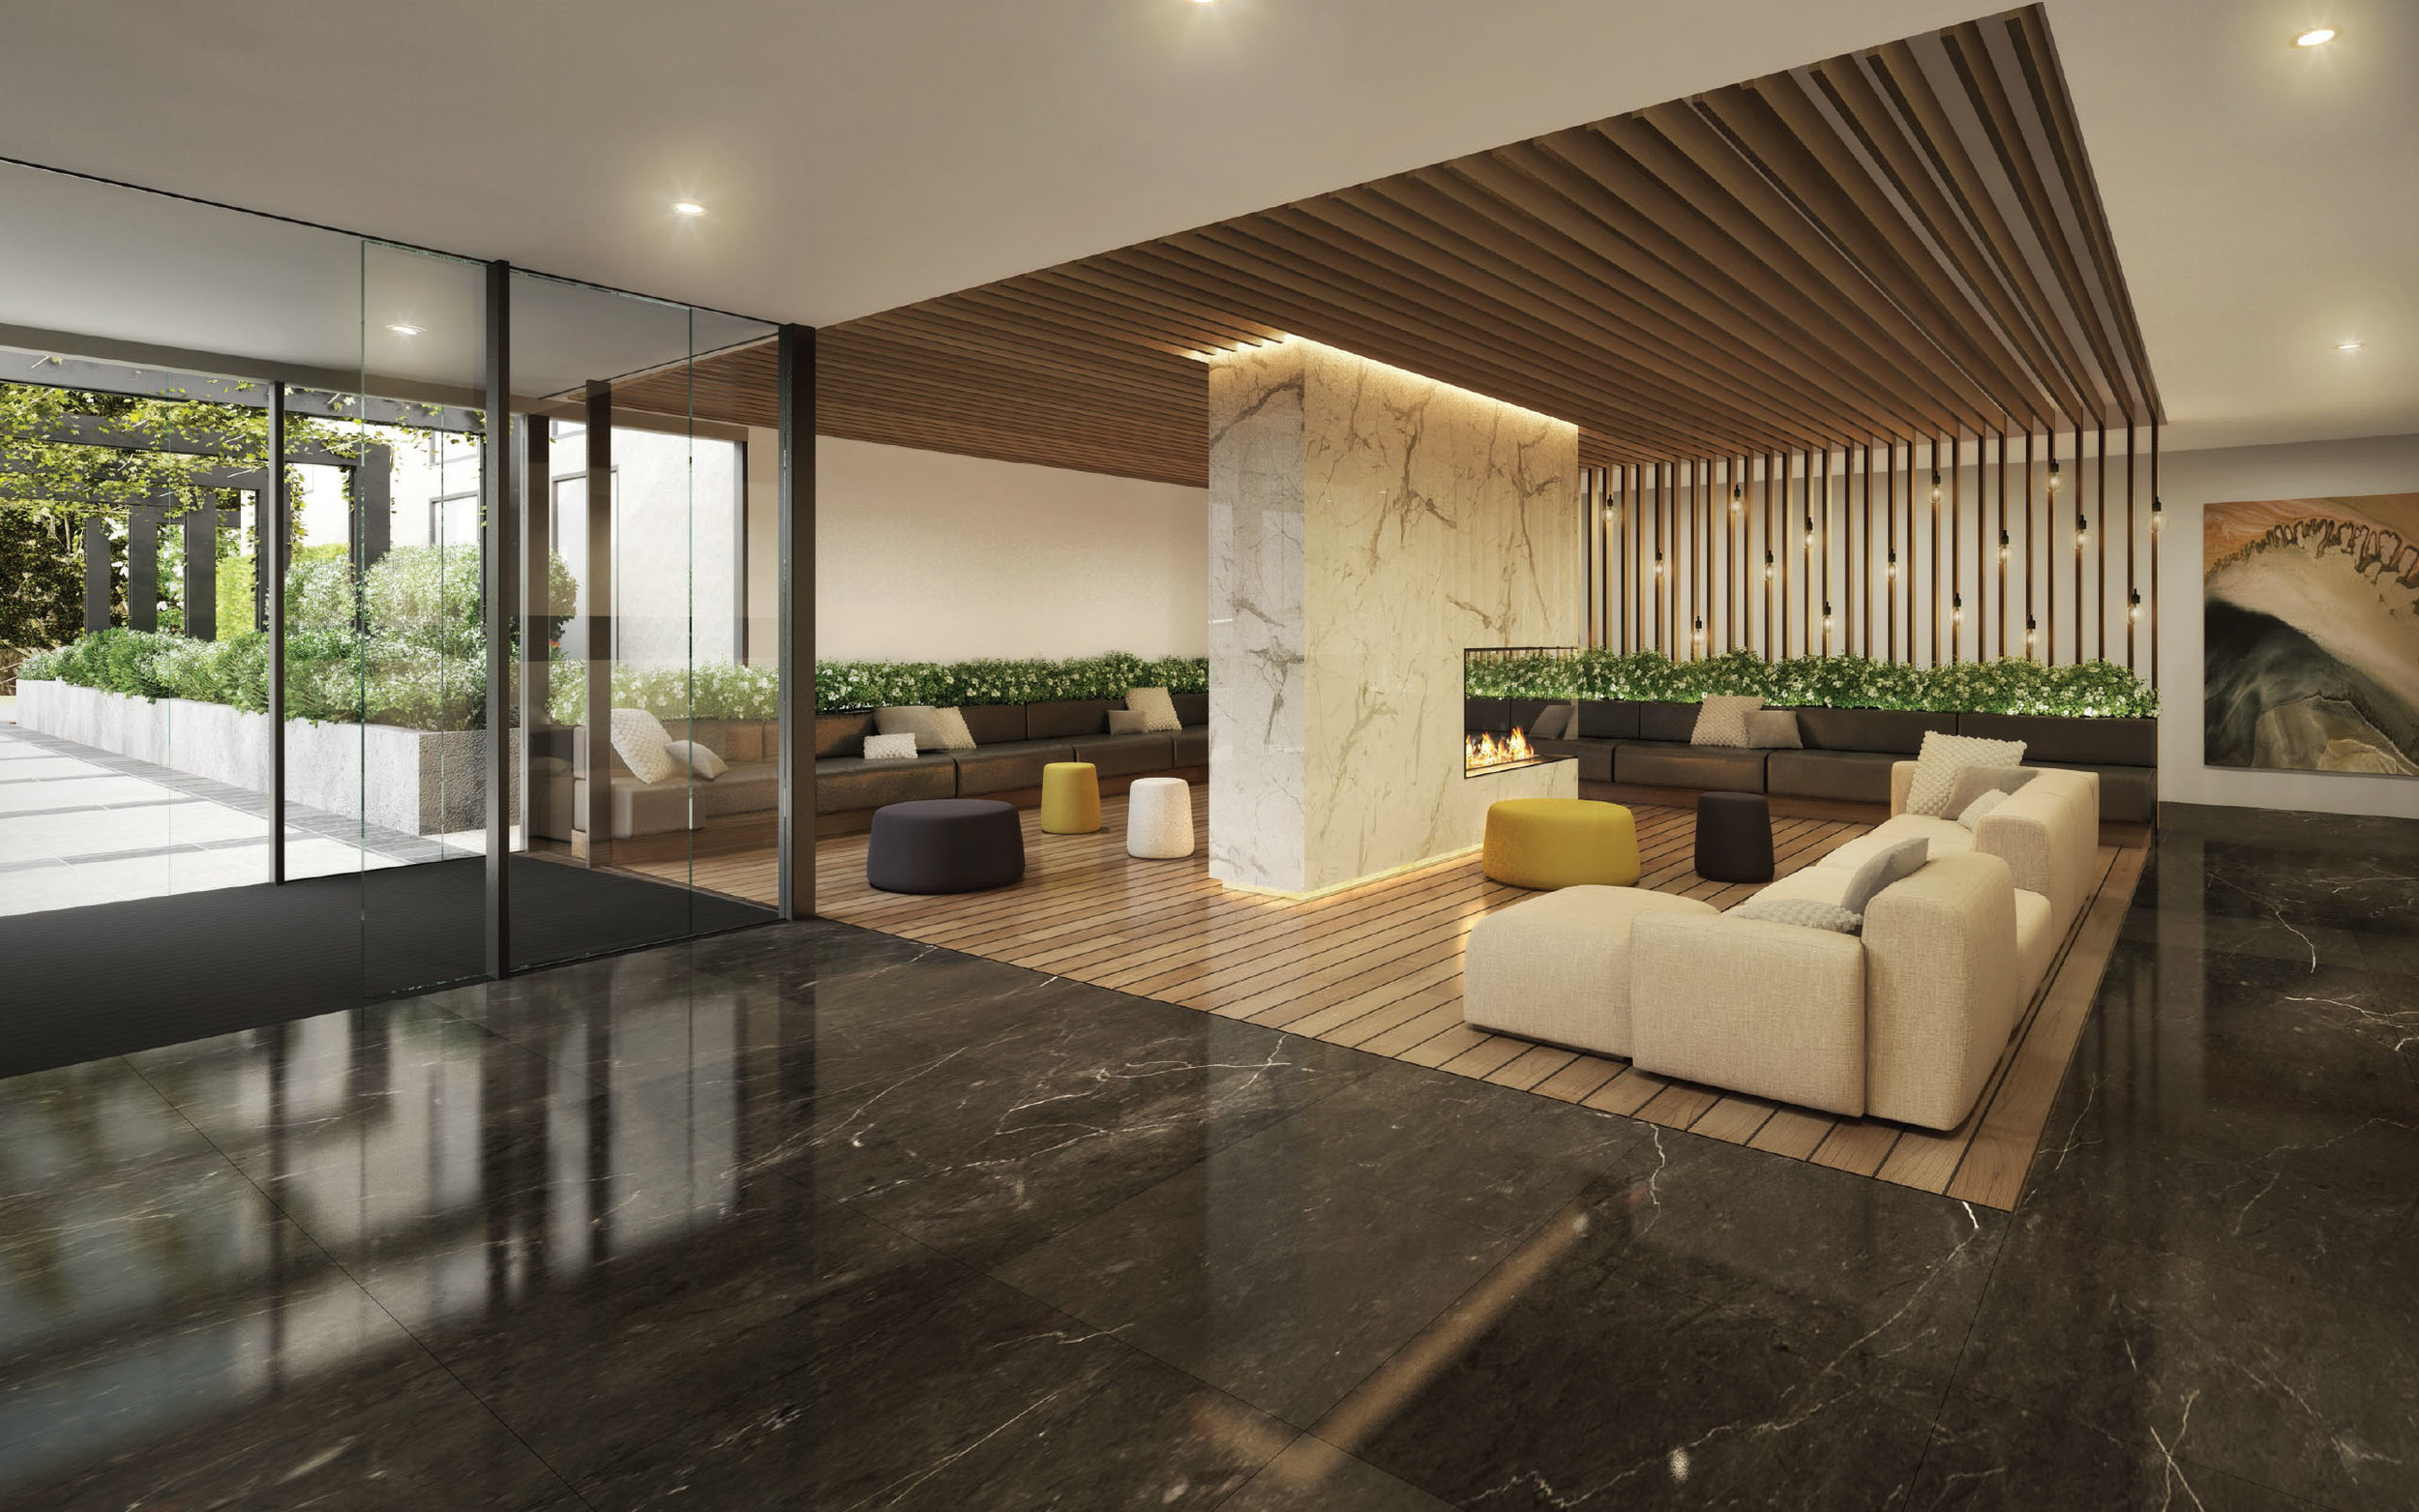 Doncaster Apartments' stylish interior